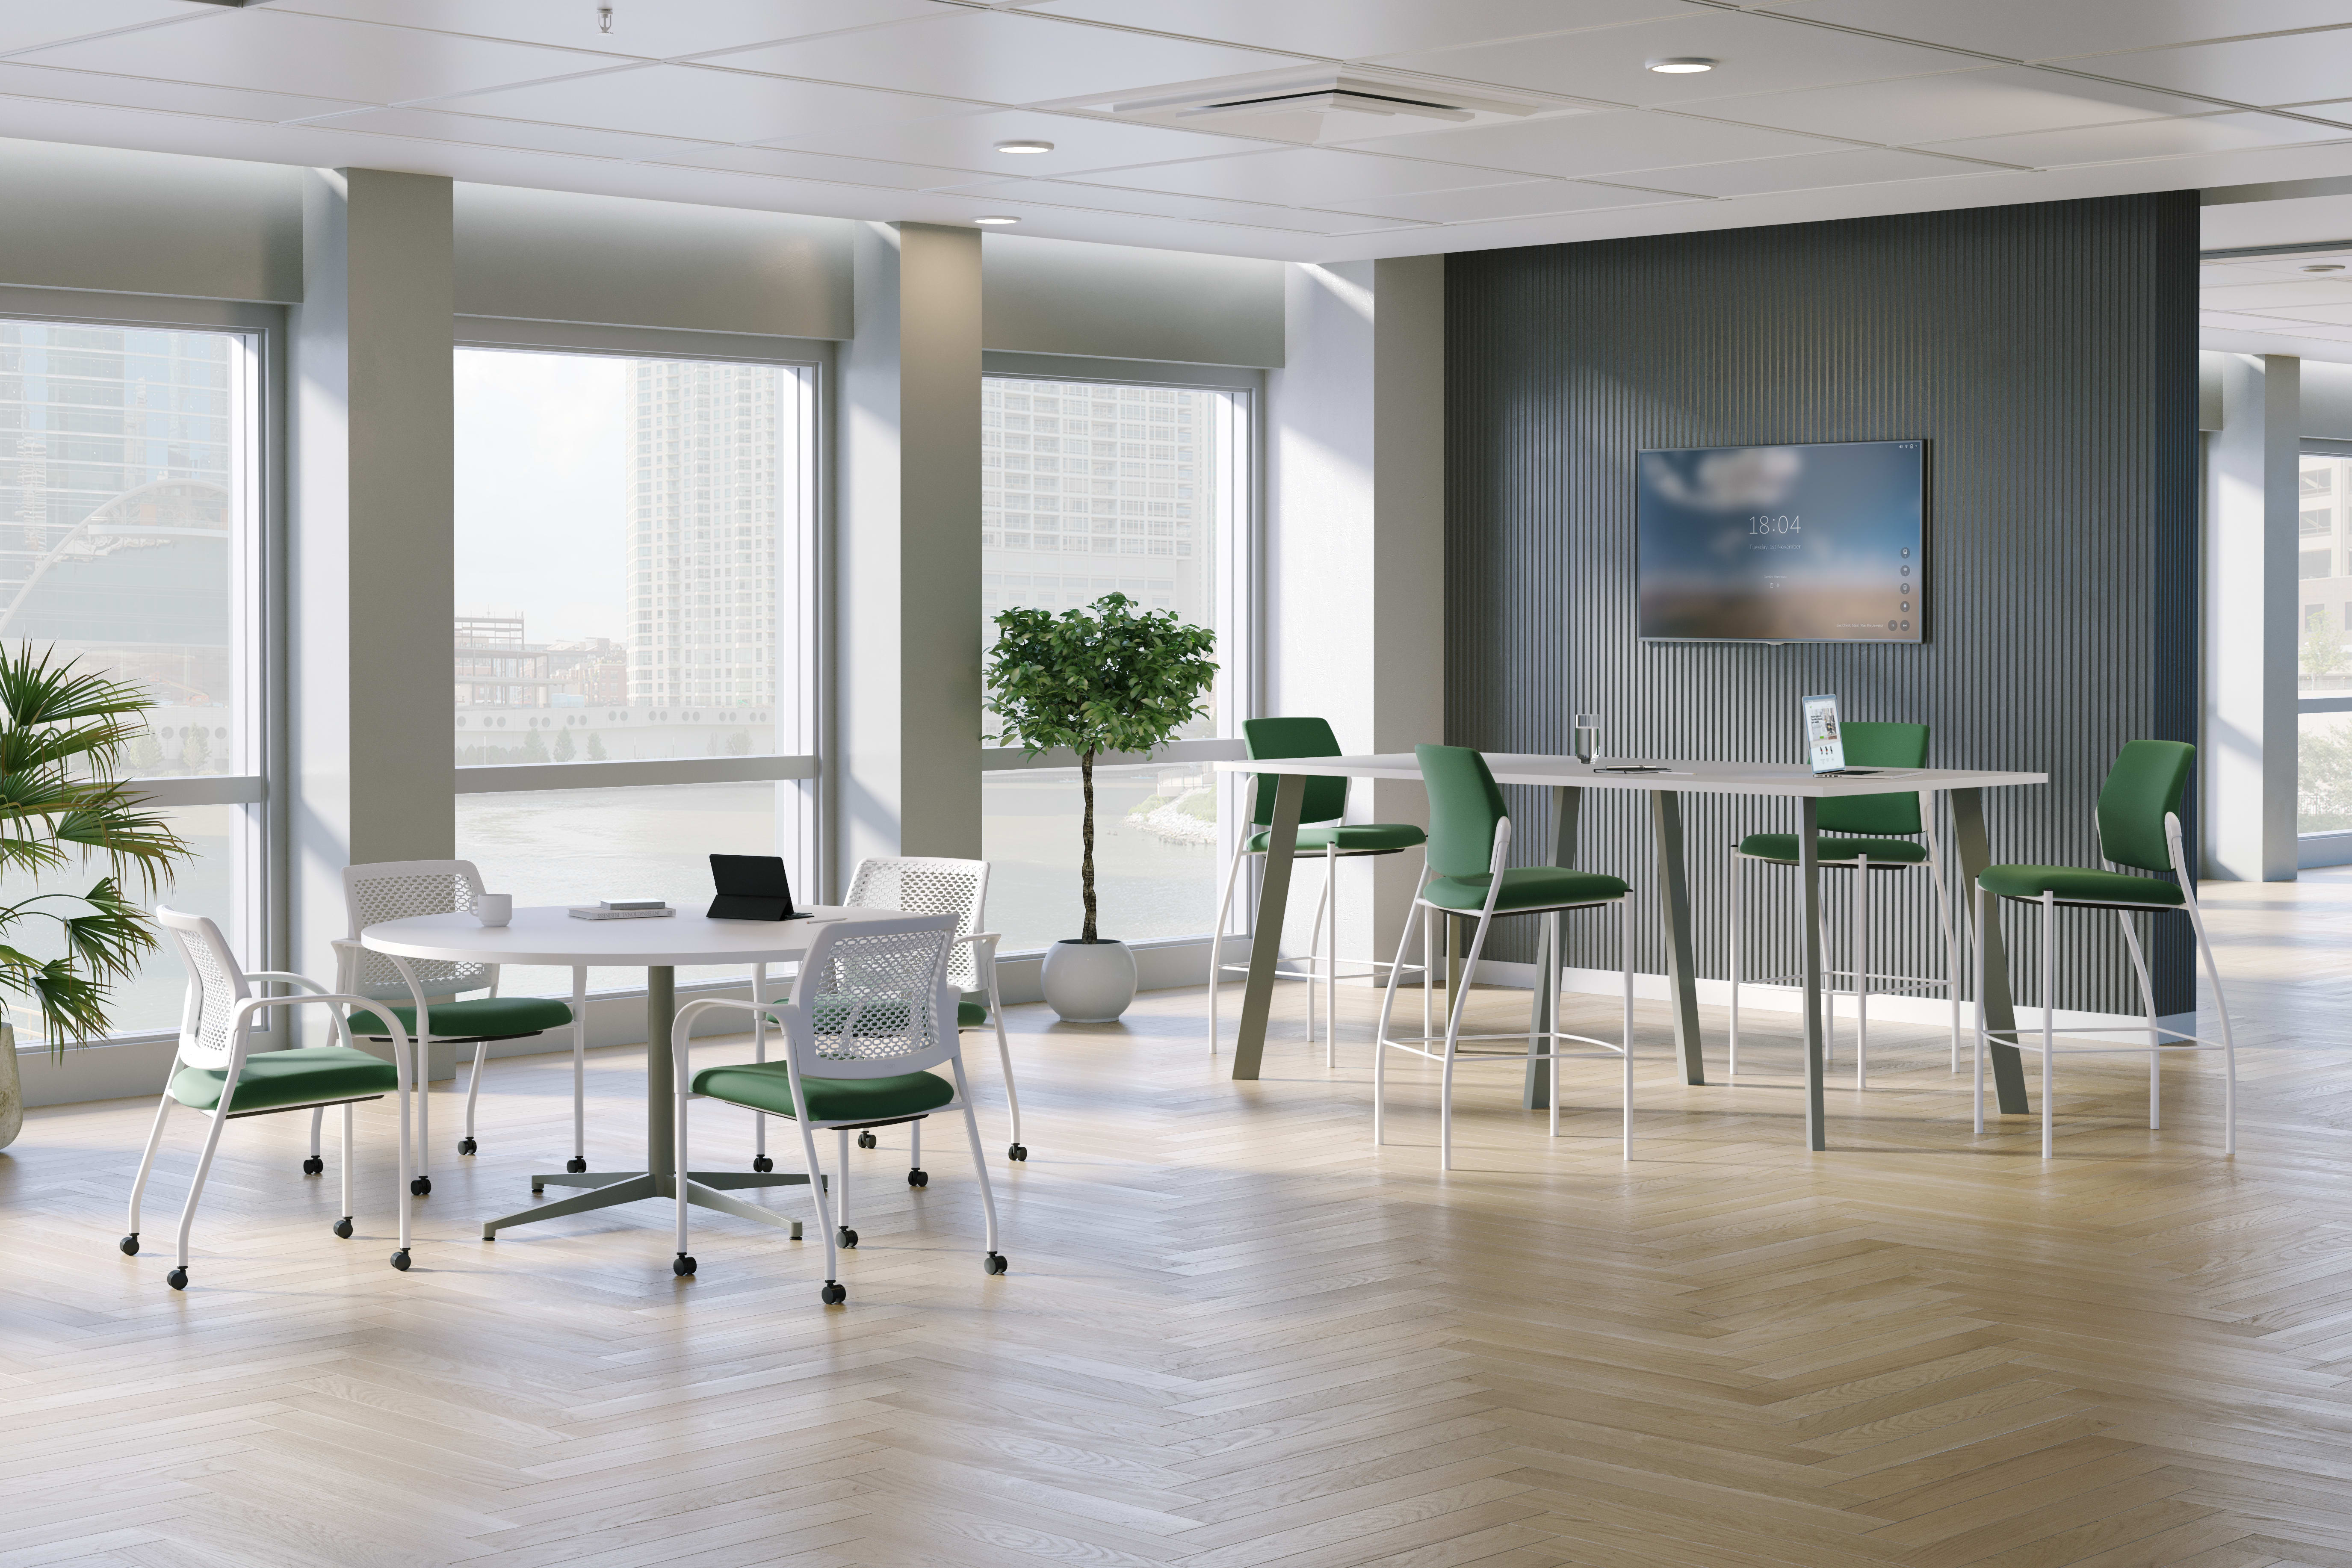 Ignition multi-purpose and café stools in a commons area